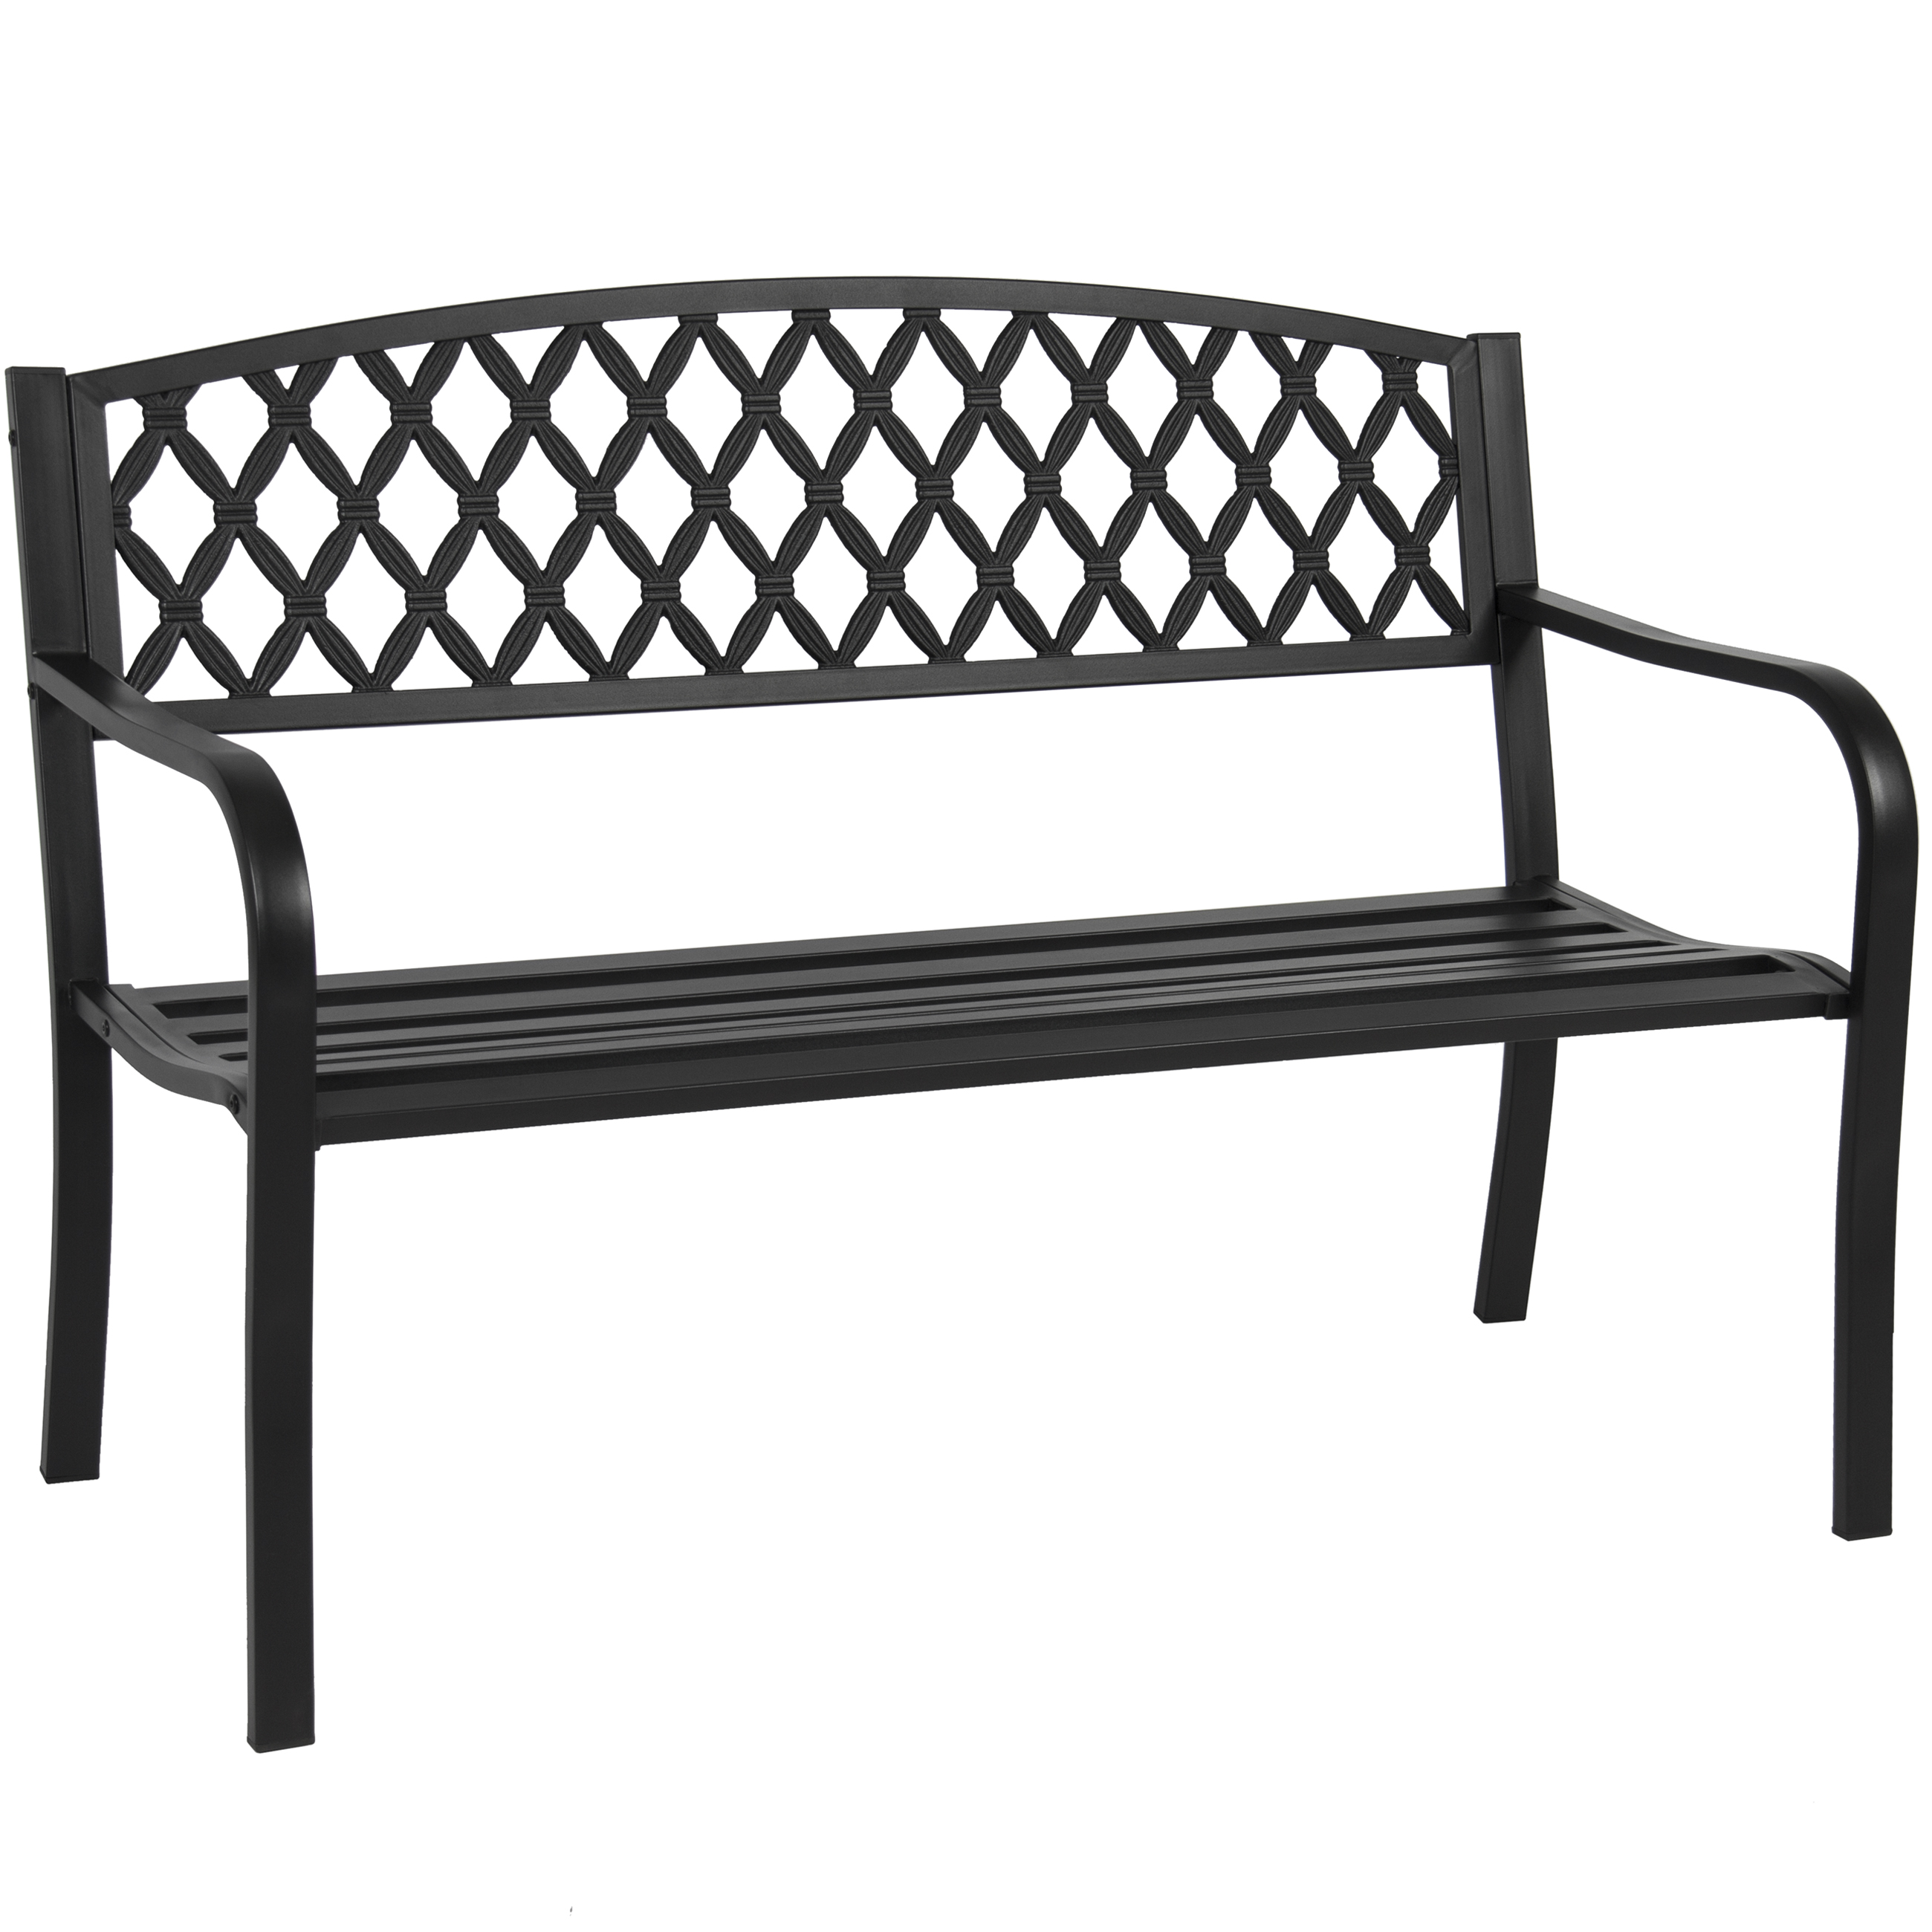 "BCP 50"" Patio Garden Bench Park Yard Outdoor Furniture Steel Frame Porch Chair by Outdoor Benches"